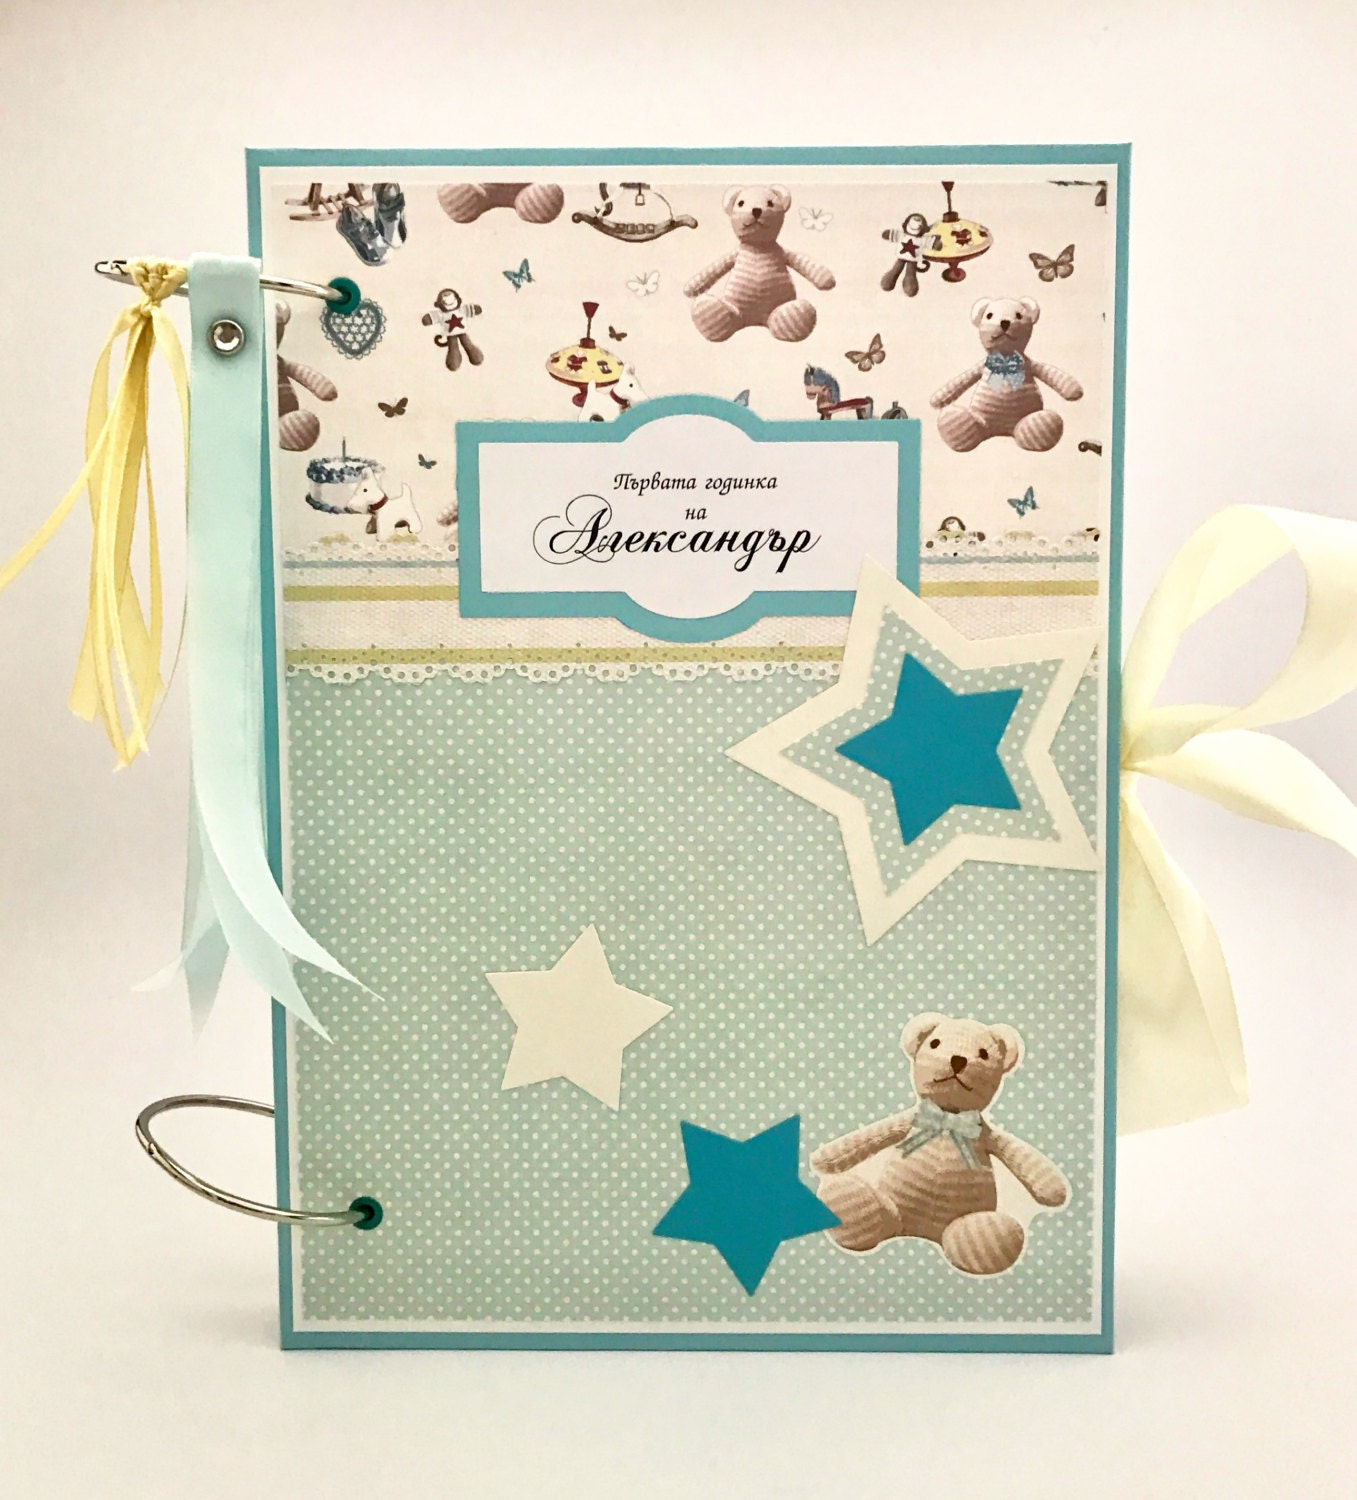 How to scrapbook baby book - Sold By Kristabellacreations